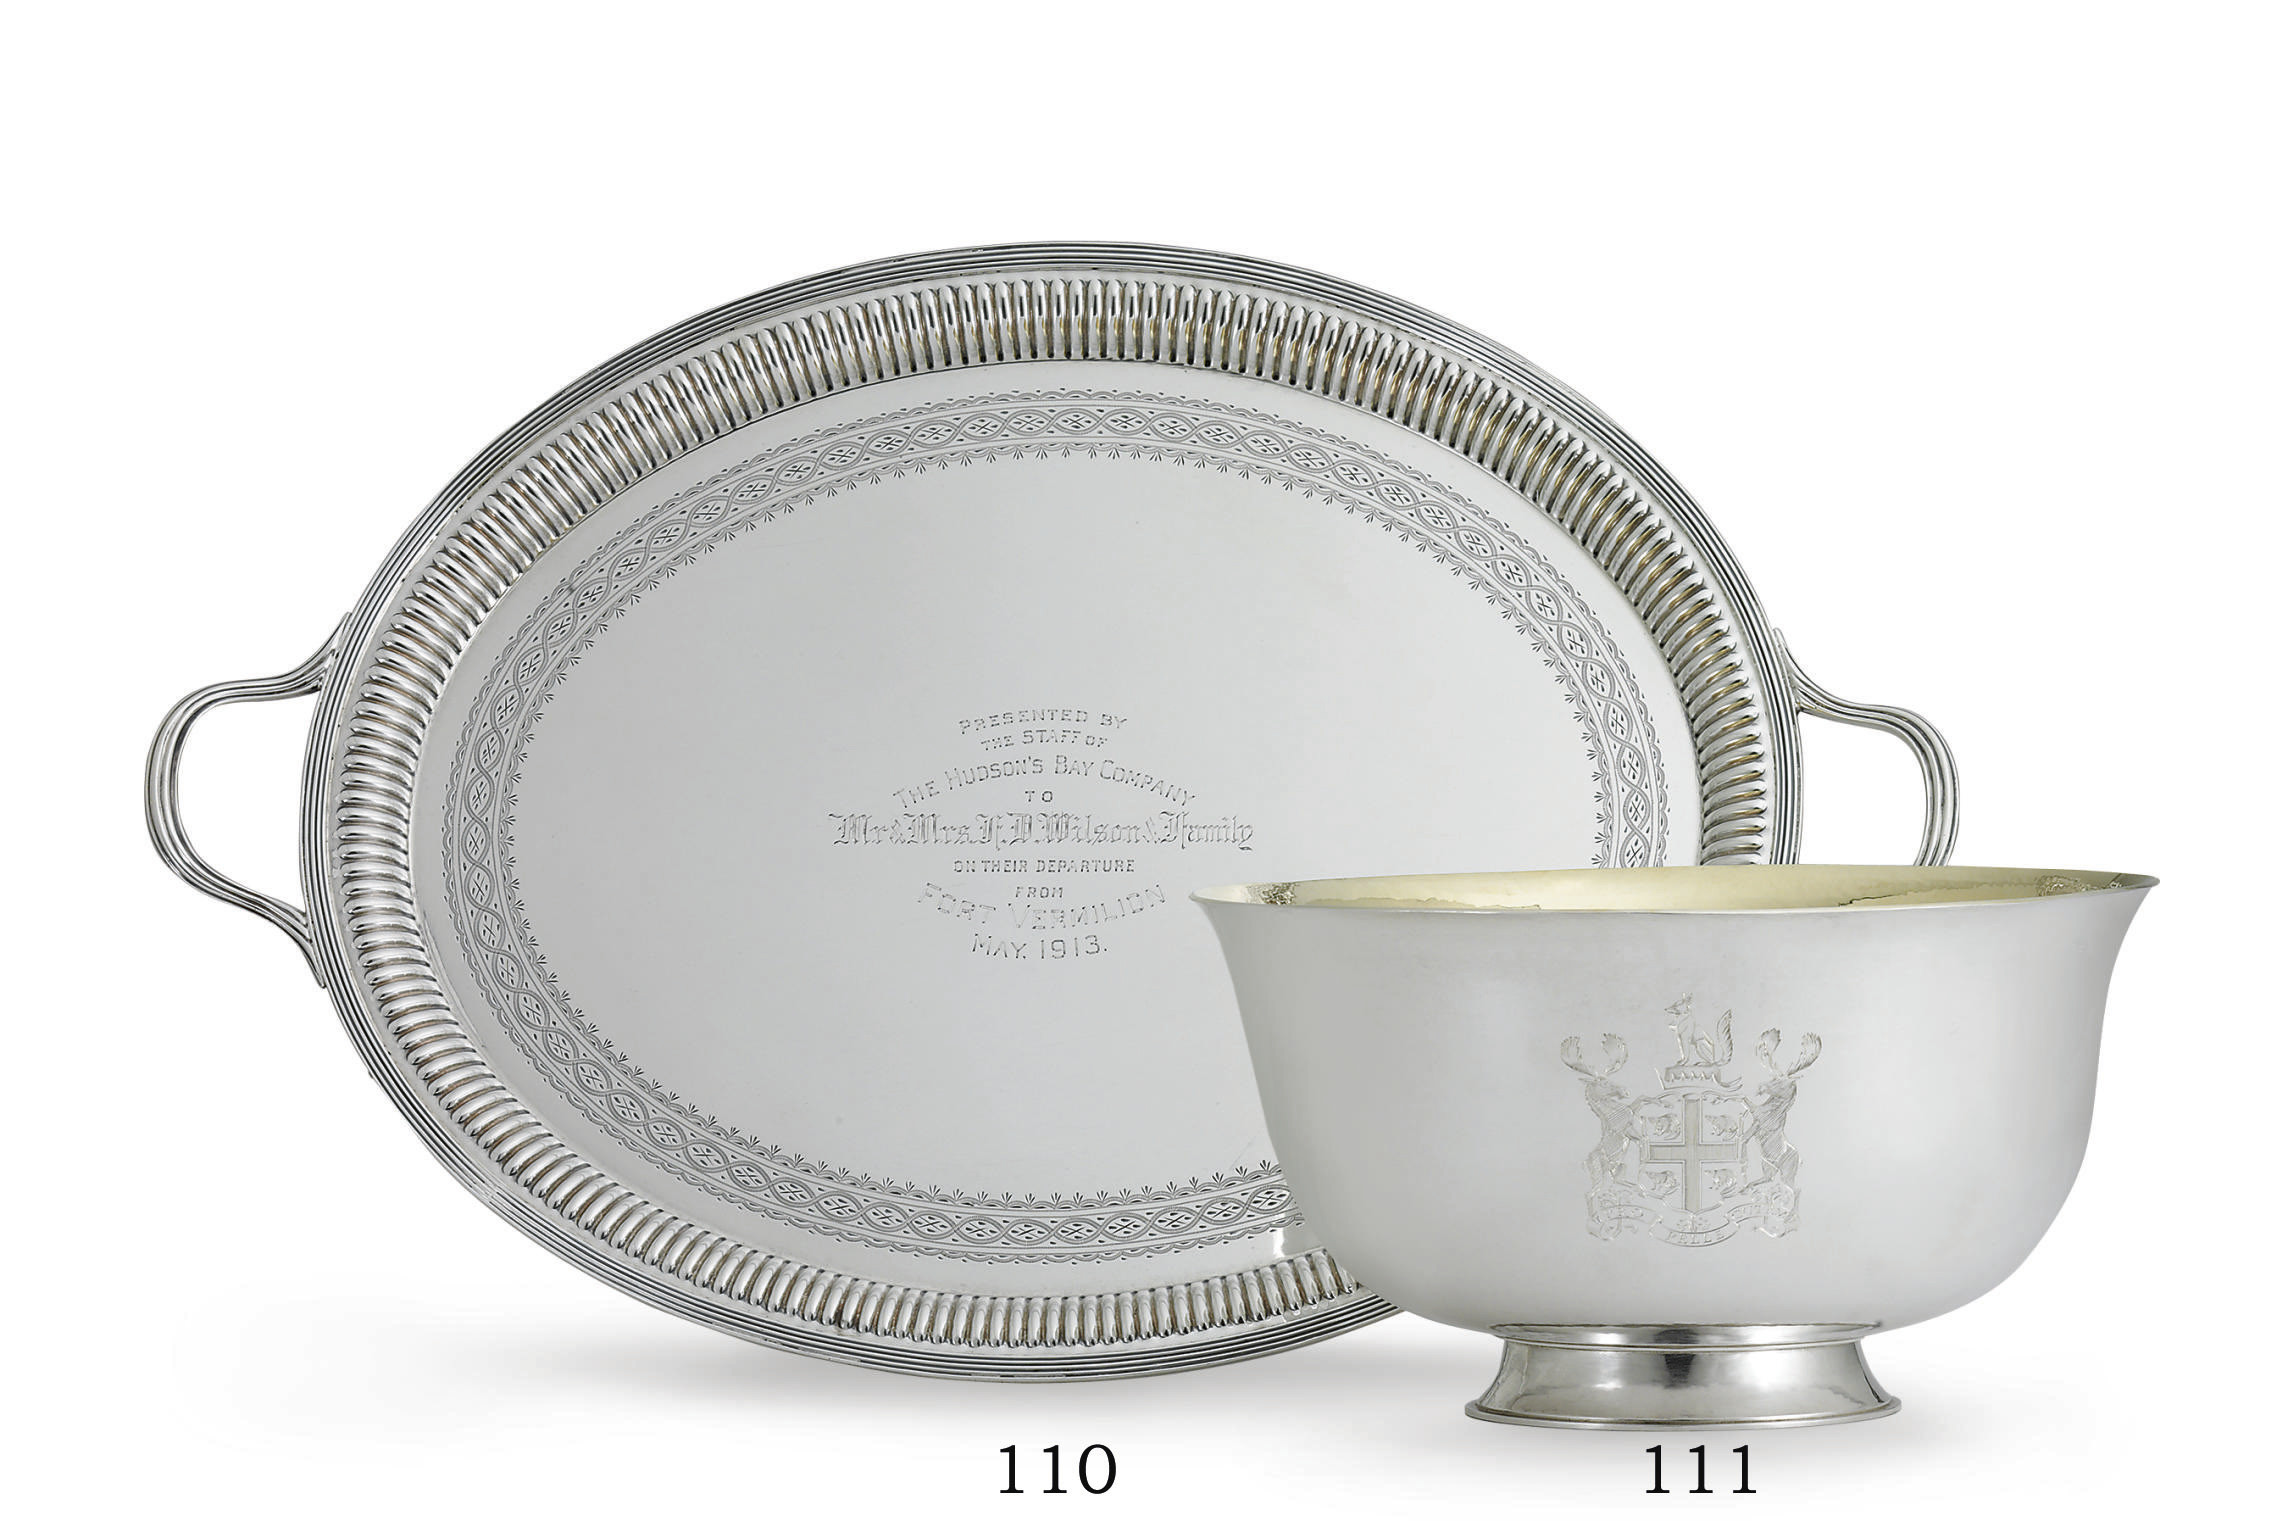 A GEORGE V SILVER PRESENTATION TRAY OF CANADIAN INTEREST